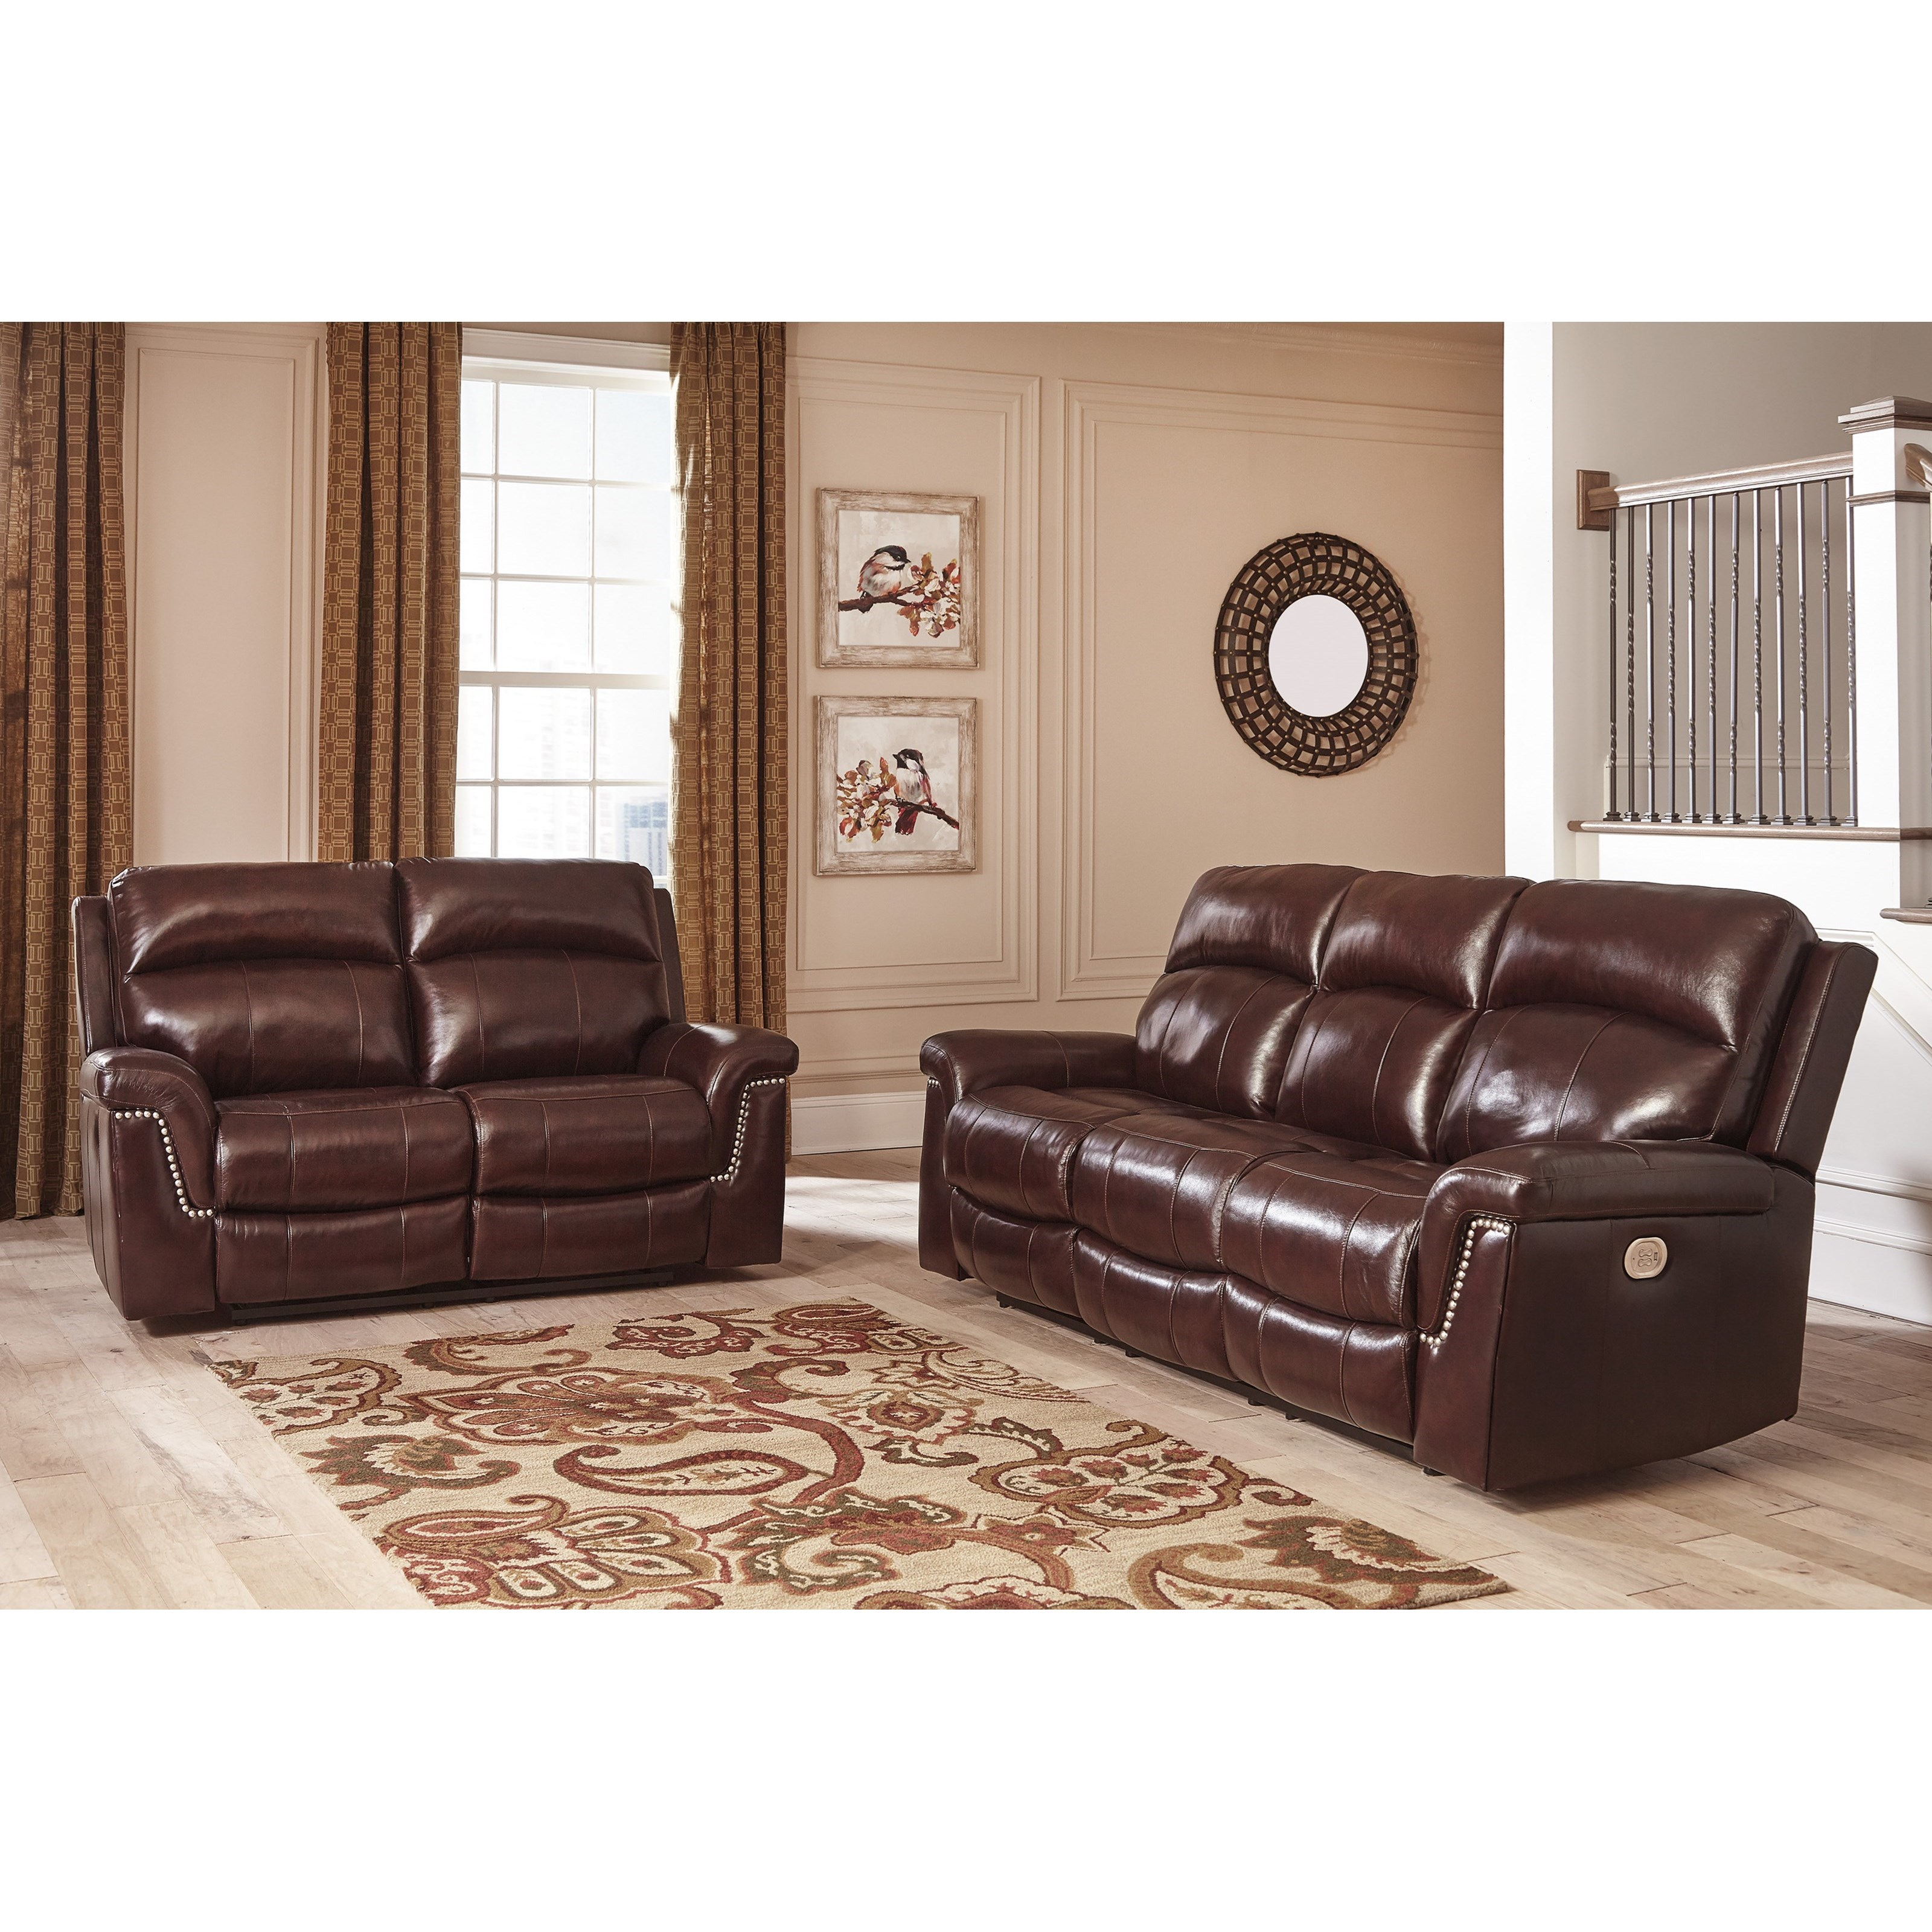 Signature Design by Ashley Timmons Reclining Living Room Group - Item Number: 74501 Reclining Living Room Group 1